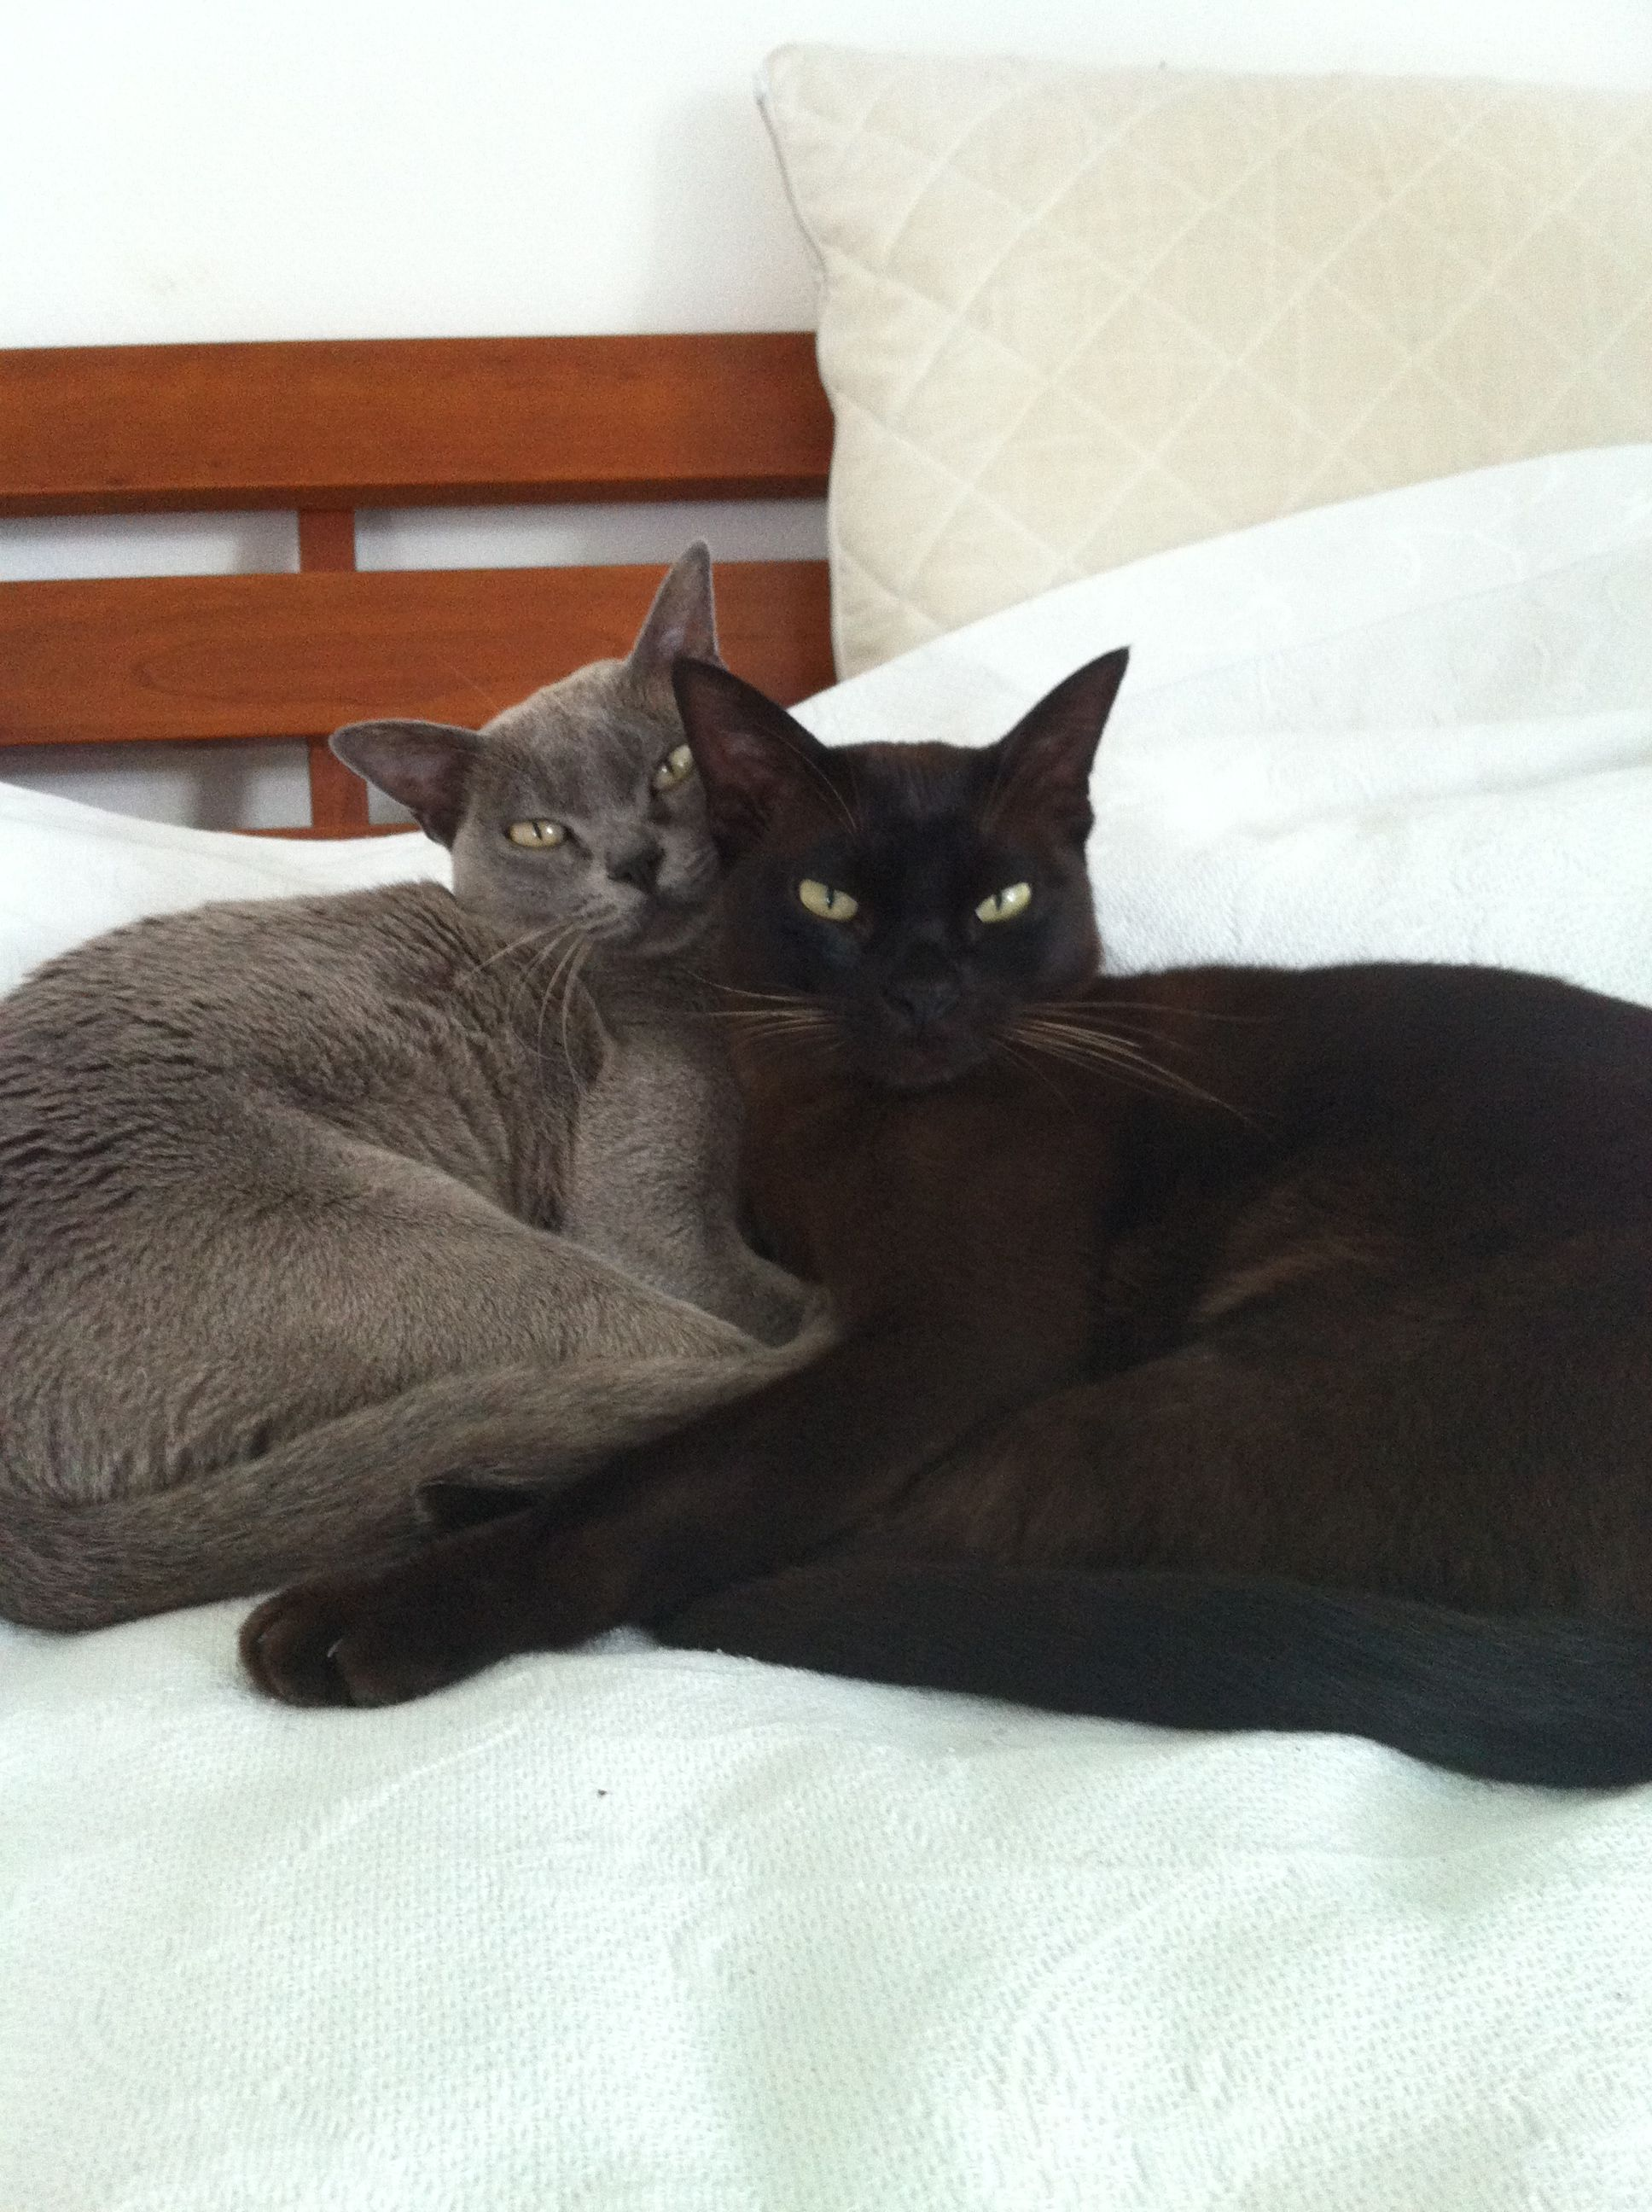 Burmese Cats Brother And Sister Very Attached Cats Burmilla Cat Cool Cats